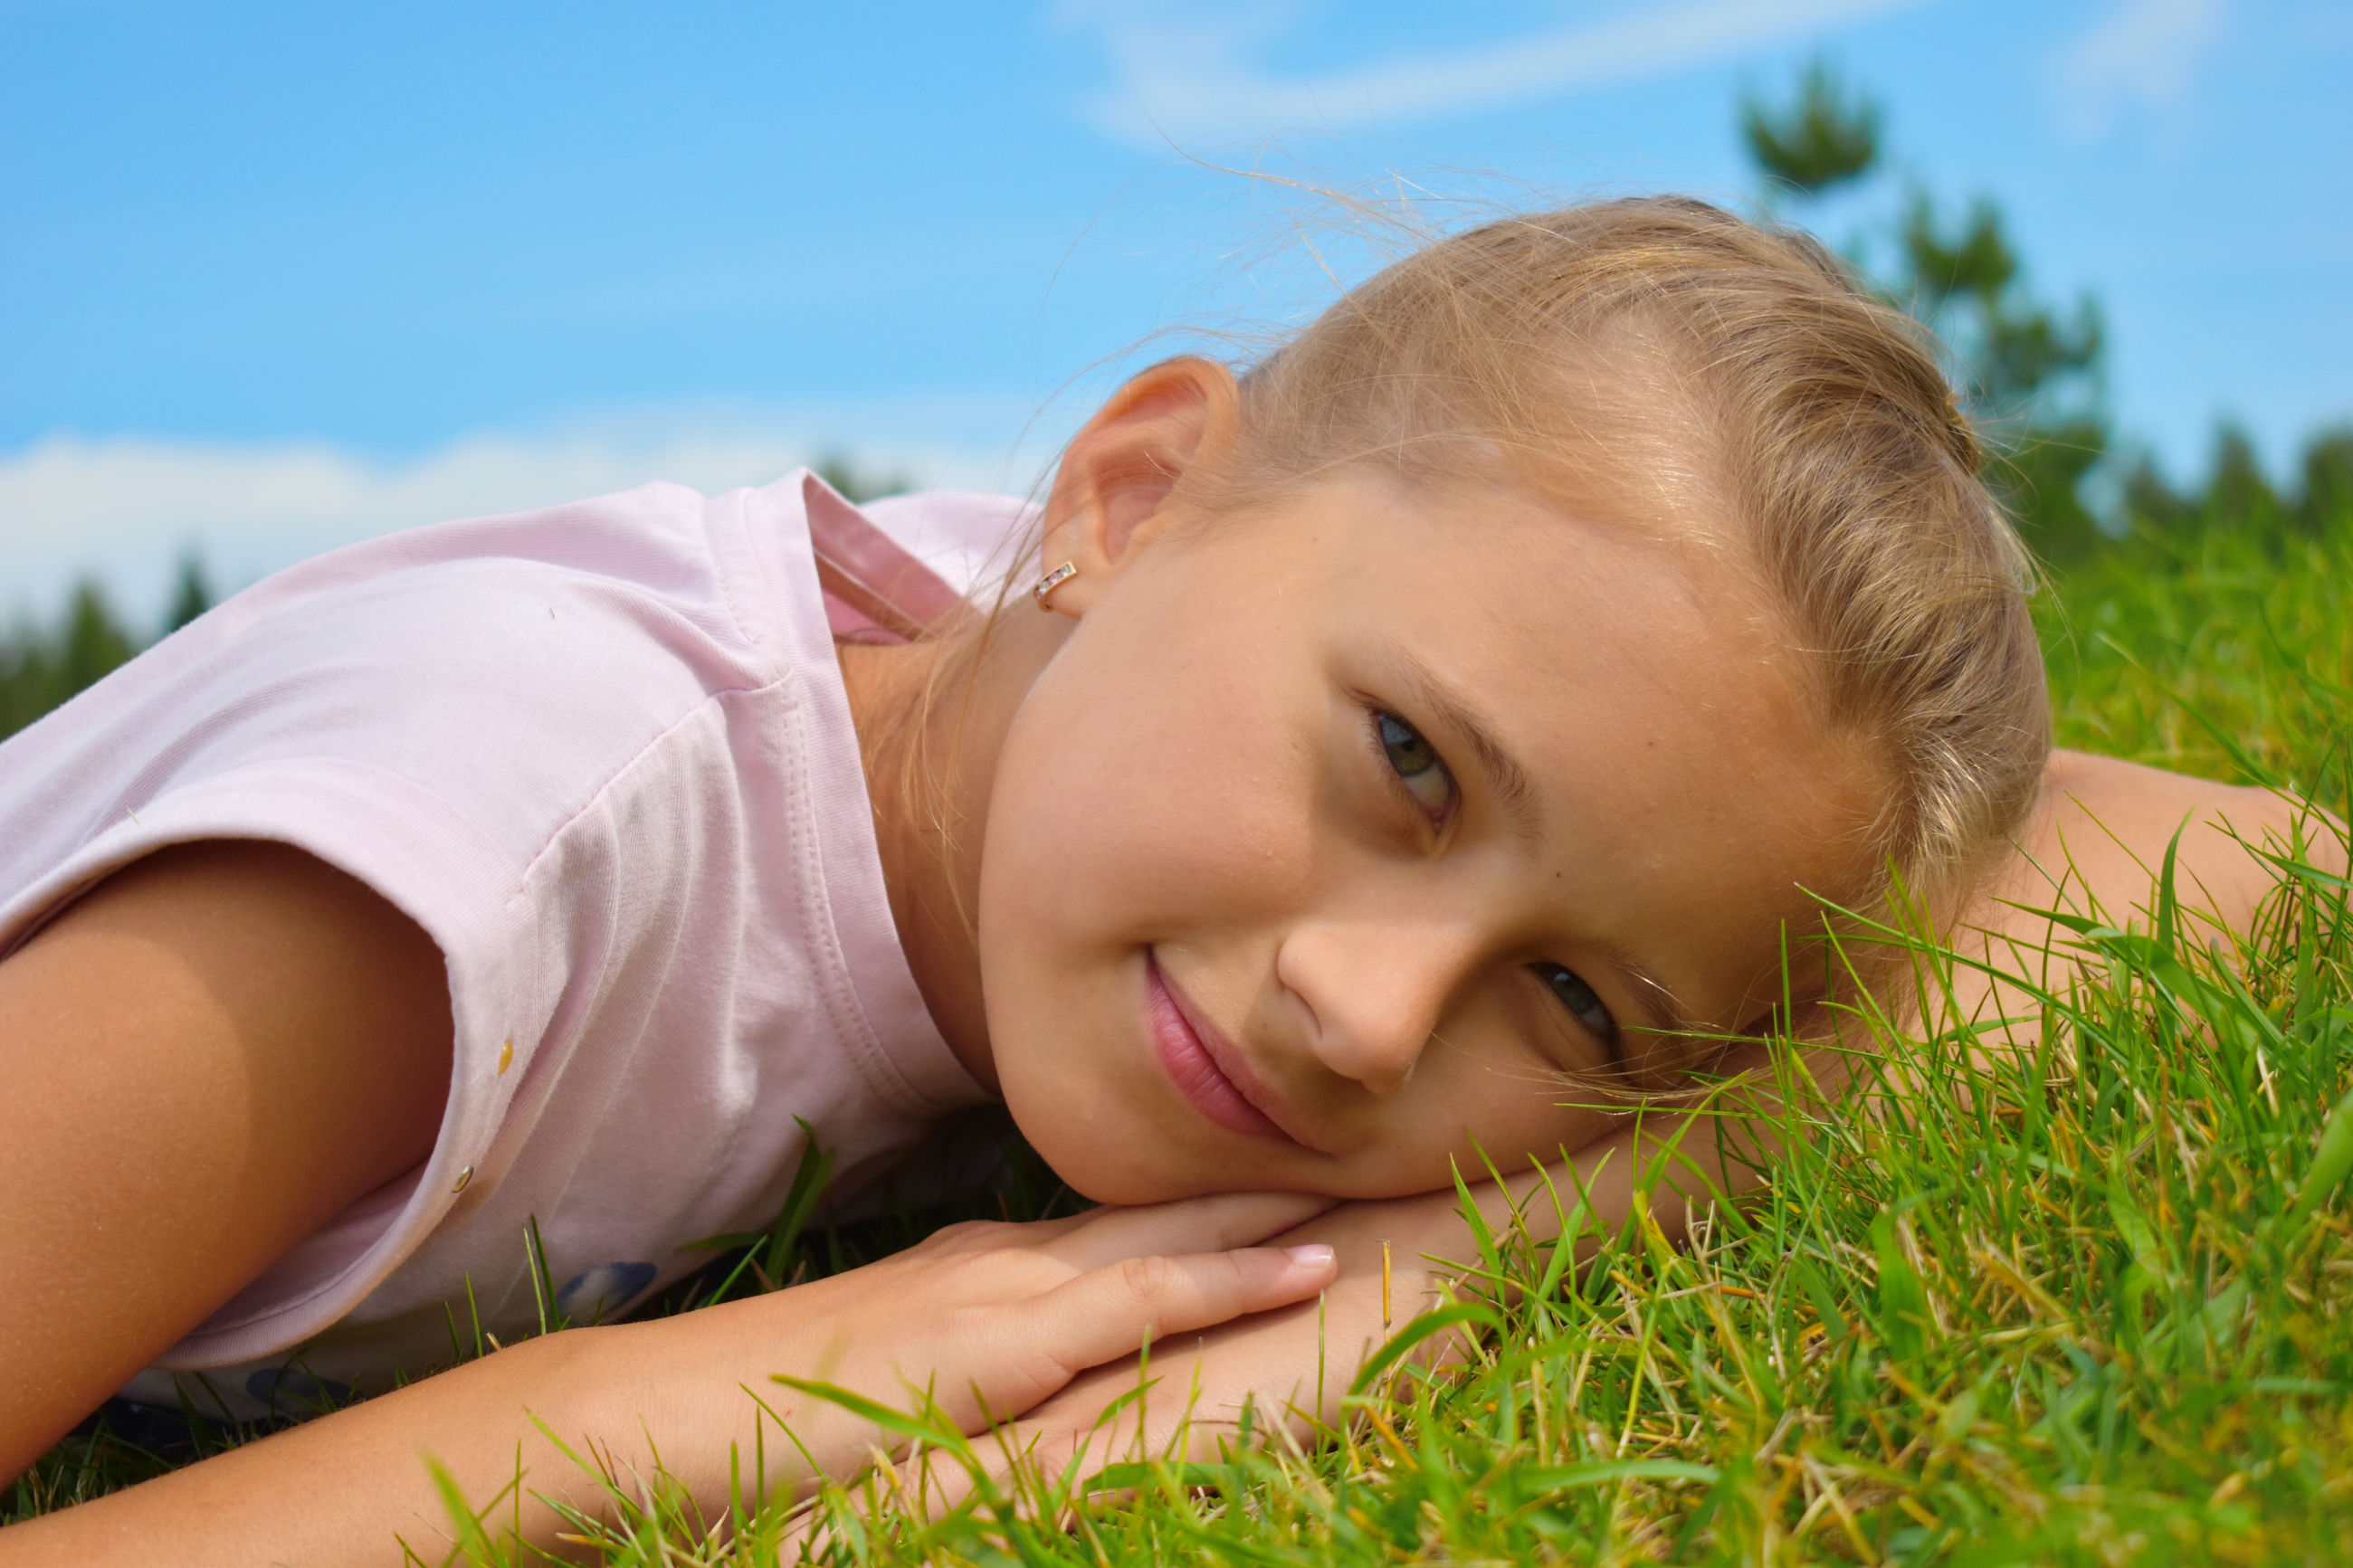 Portrait of girl lying down on grass at park against sky